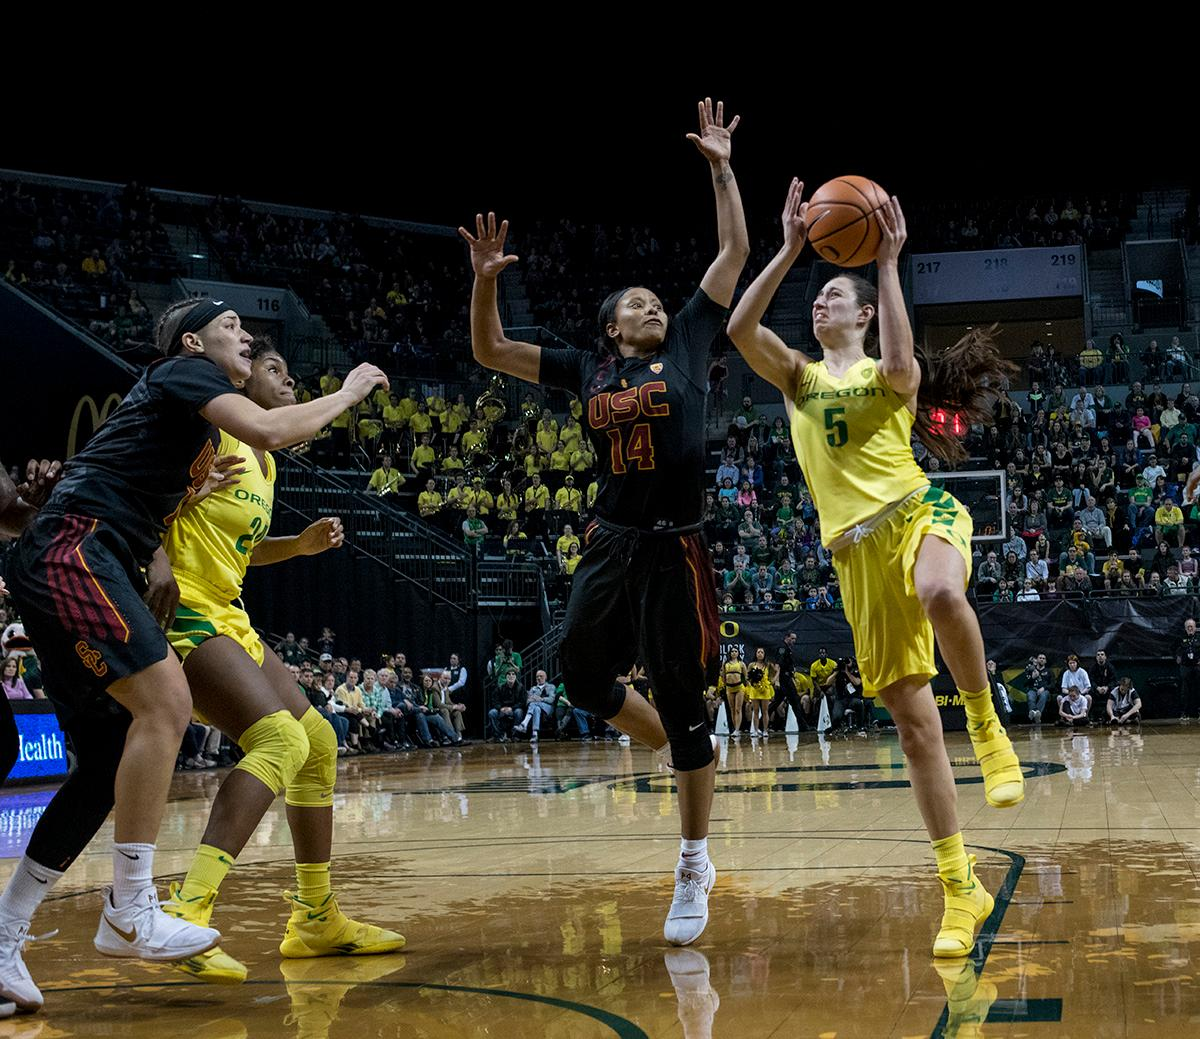 Oregon Ducks Maite Cazorla (#5) aims for the basket as USC Trojans Sadie Edwards (#14) attempts to block the shot. The Oregon Ducks defeated the USC Trojans 80-74 on Friday at Matthew Knight Arena in a game that went into double overtime. Lexi Bando sealed the Ducks' victory by scoring a three-pointer in the closing of the game. Ruthy Hebard set a new NCAA record of 30 consecutive field goals in three straight games, the old record being 28. Ruthy Hebard got a double-double with 27 points and 10 rebounds, Mallory McGwire also had 10 rebounds. The Ducks had four players in double digits. The Ducks are now 24-4, 13-2 in the Pac-12, and are tied for first with Stanford. Photo By Rhianna Gelhart, Oregon News Lab